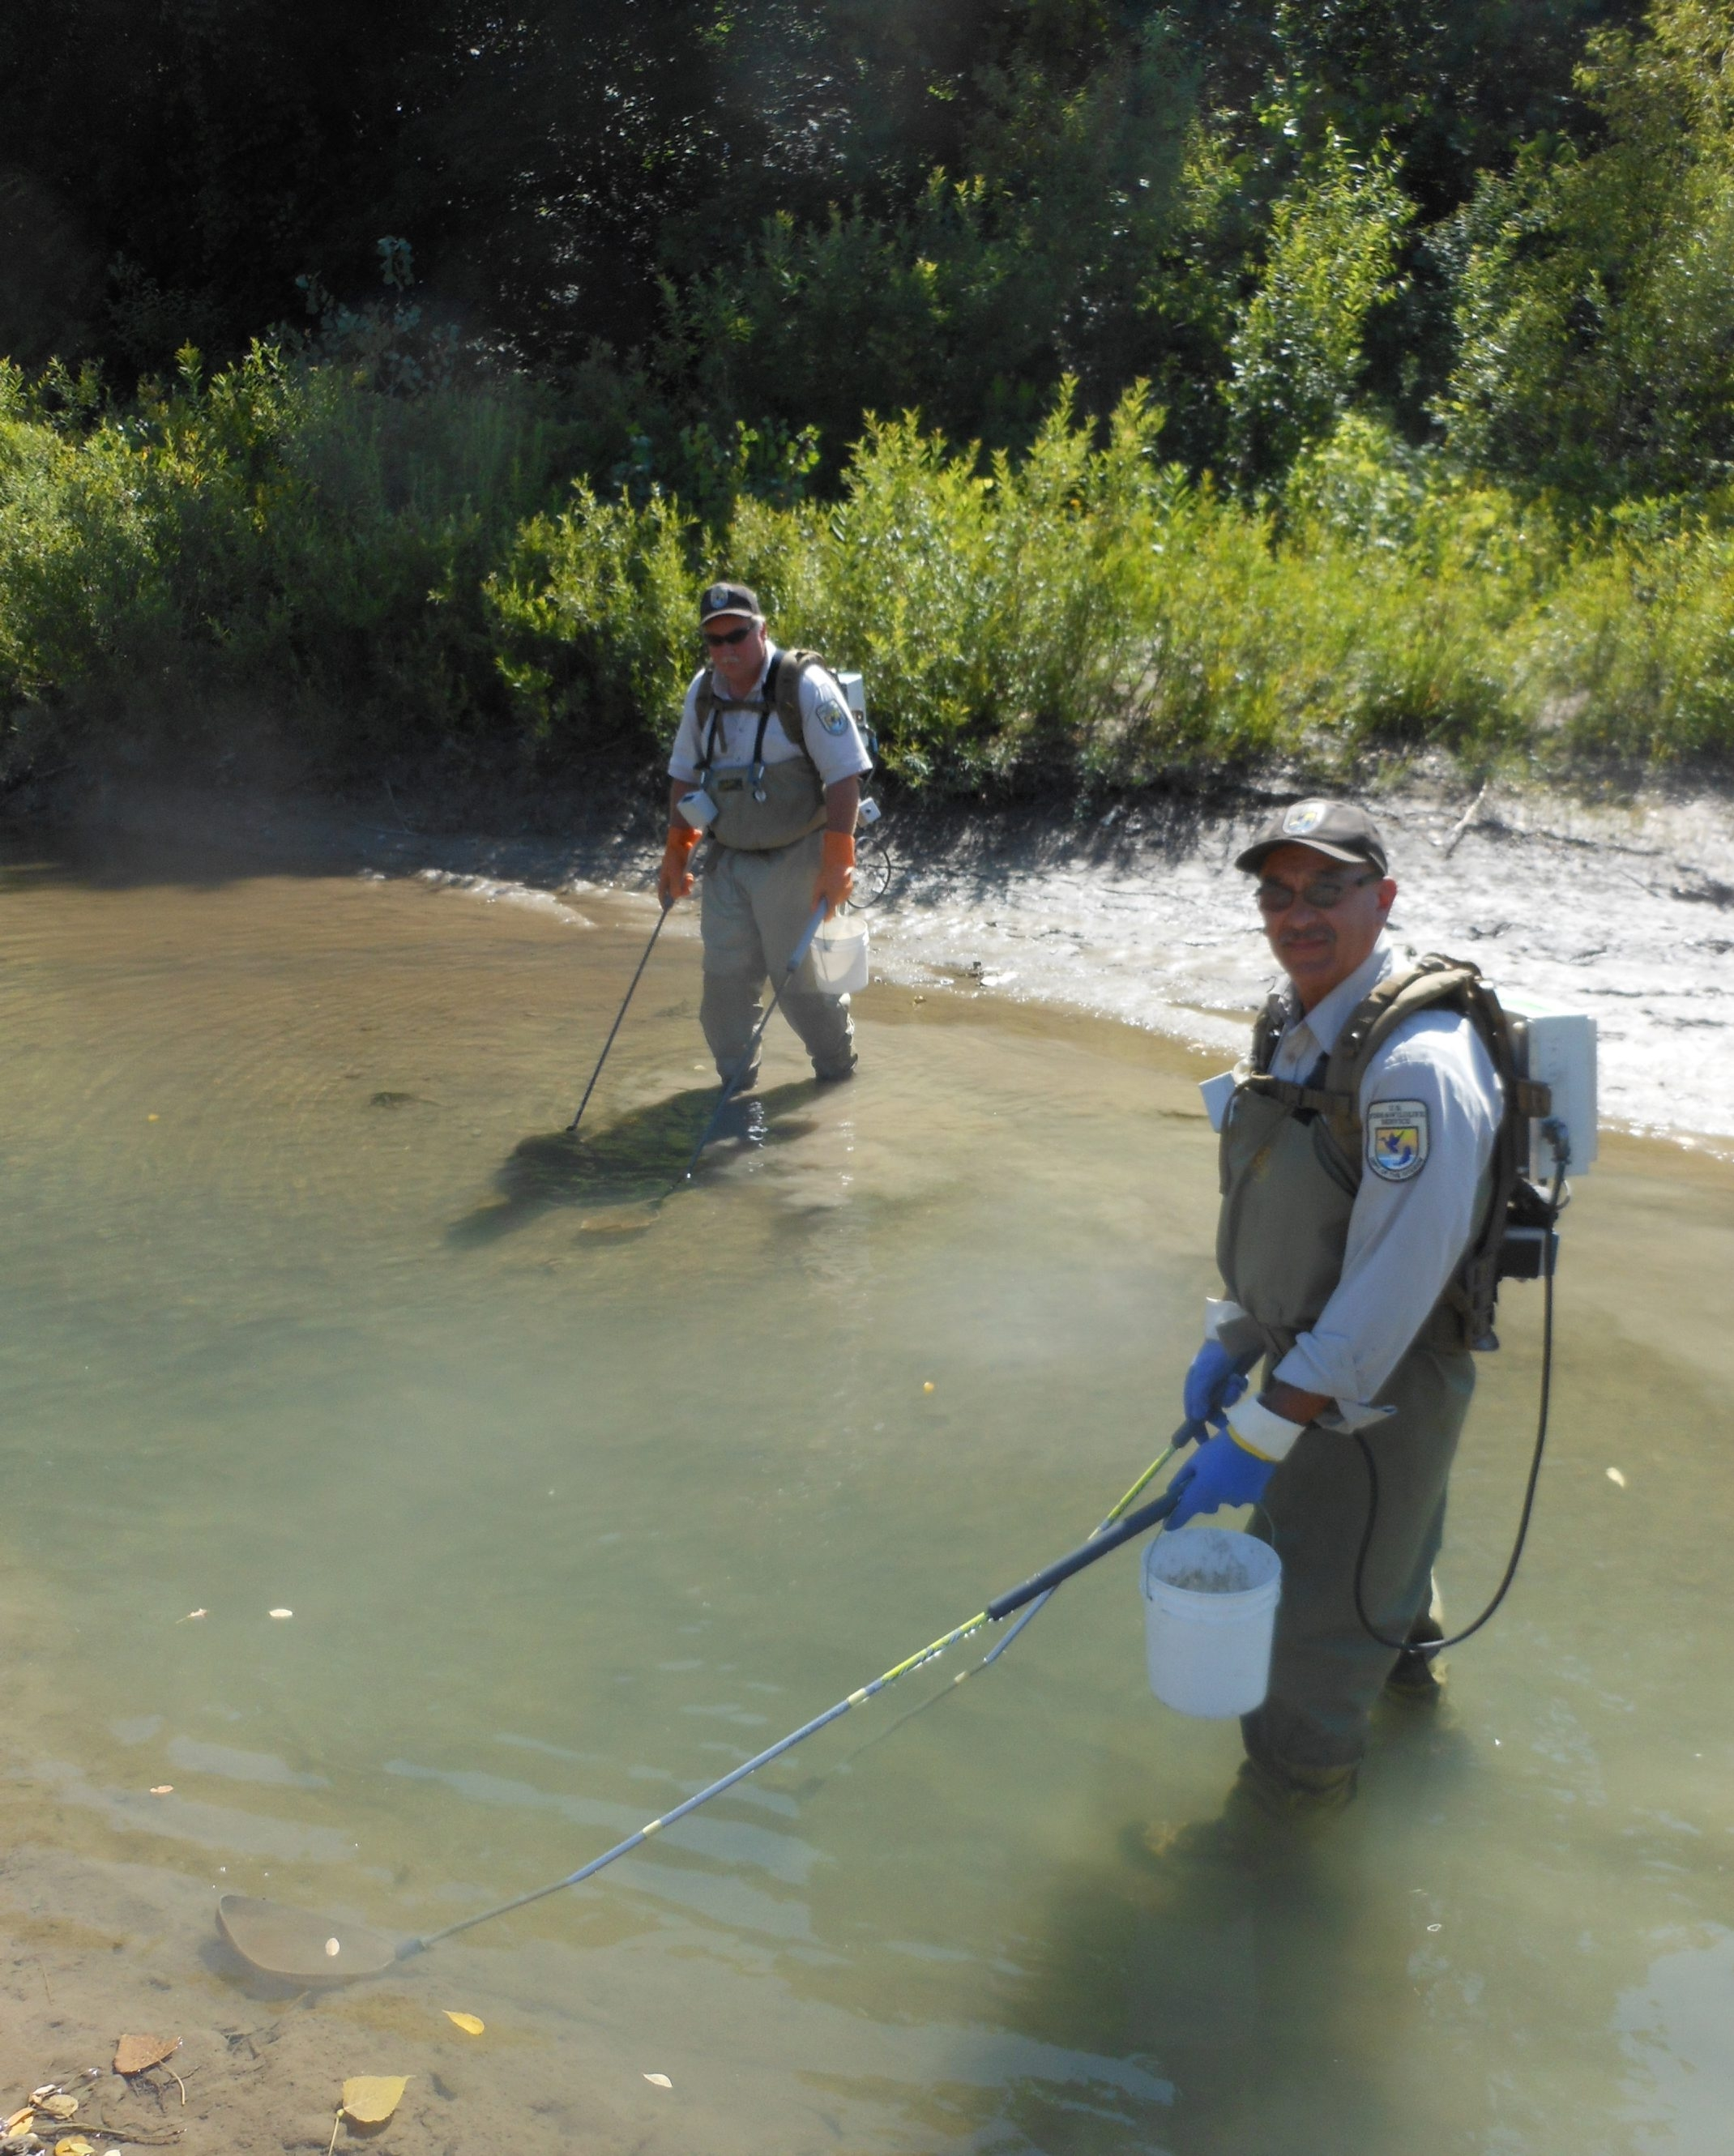 Outdoors Page Photo (lead column) for 8/24/14 for will elliott – [Caption: Federal wildlife biologists Dave Keffer and Ed LaFuente survey Cattaraugus Creek waters for sea lamprey larval presence]